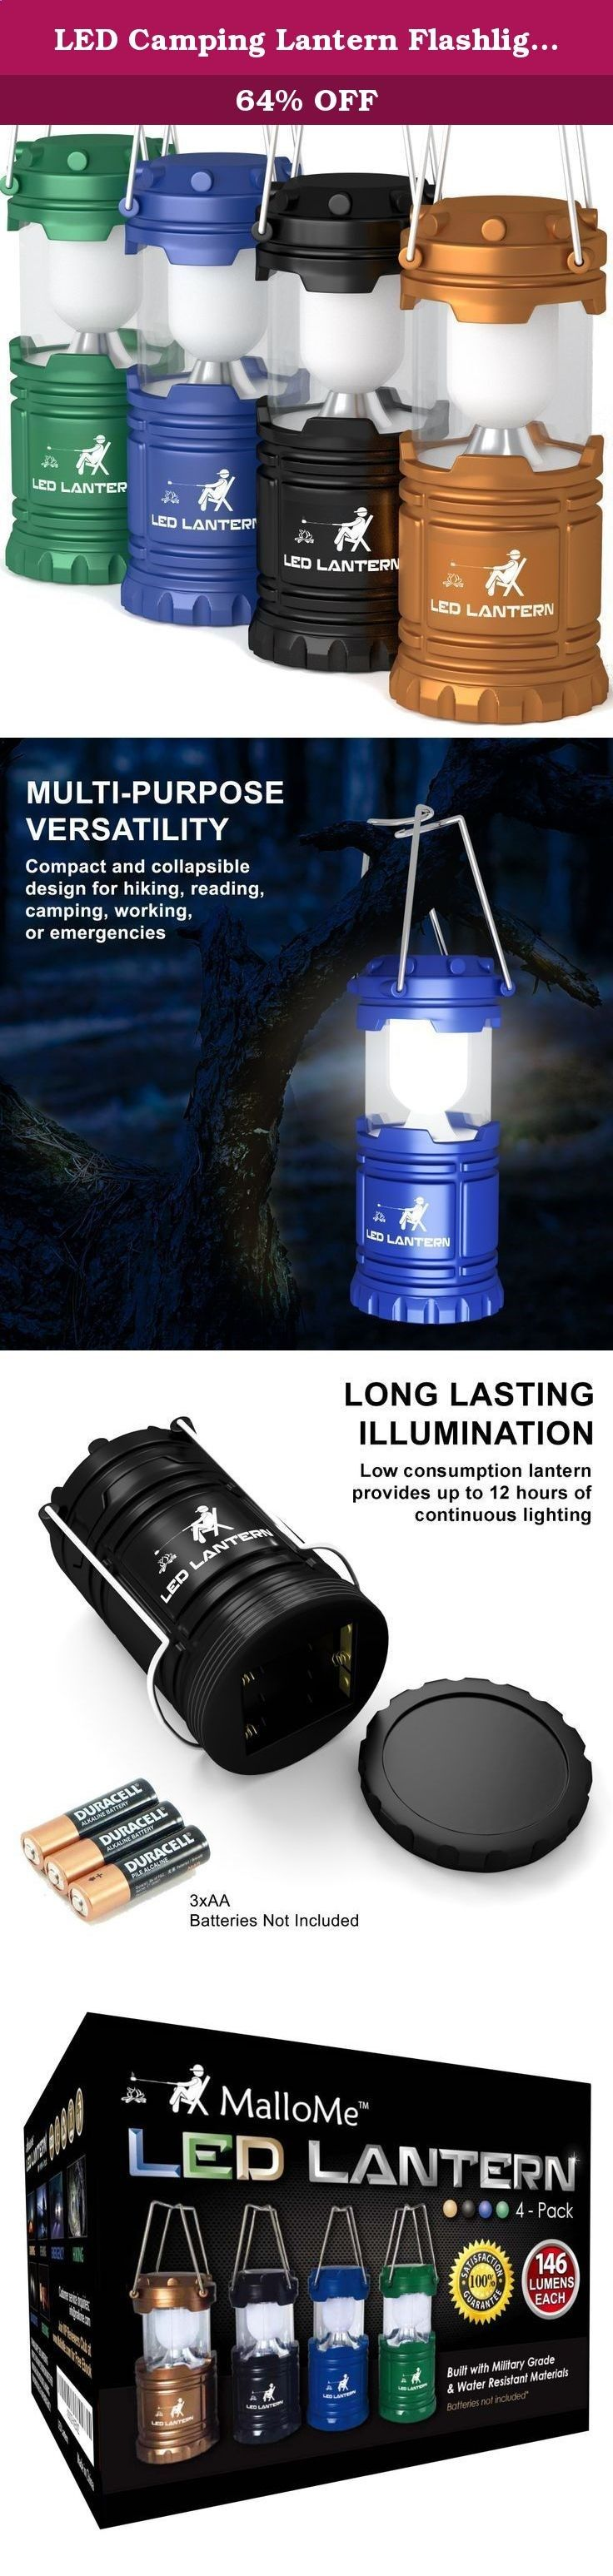 LED Camping Lantern Flashlights Camping Equipment - Great for Emergency, Tent Light, Backpacking, 4 Pack Gift Set. GONE ARE THE DAYS OF DULL, HEAVY, & CHEAP CAMPING LED LANTERNS & FLASHLIGHTS! GET YOUR CAMPING BACKPACK READY! THE BEST OUTDOOR BACKPACKING